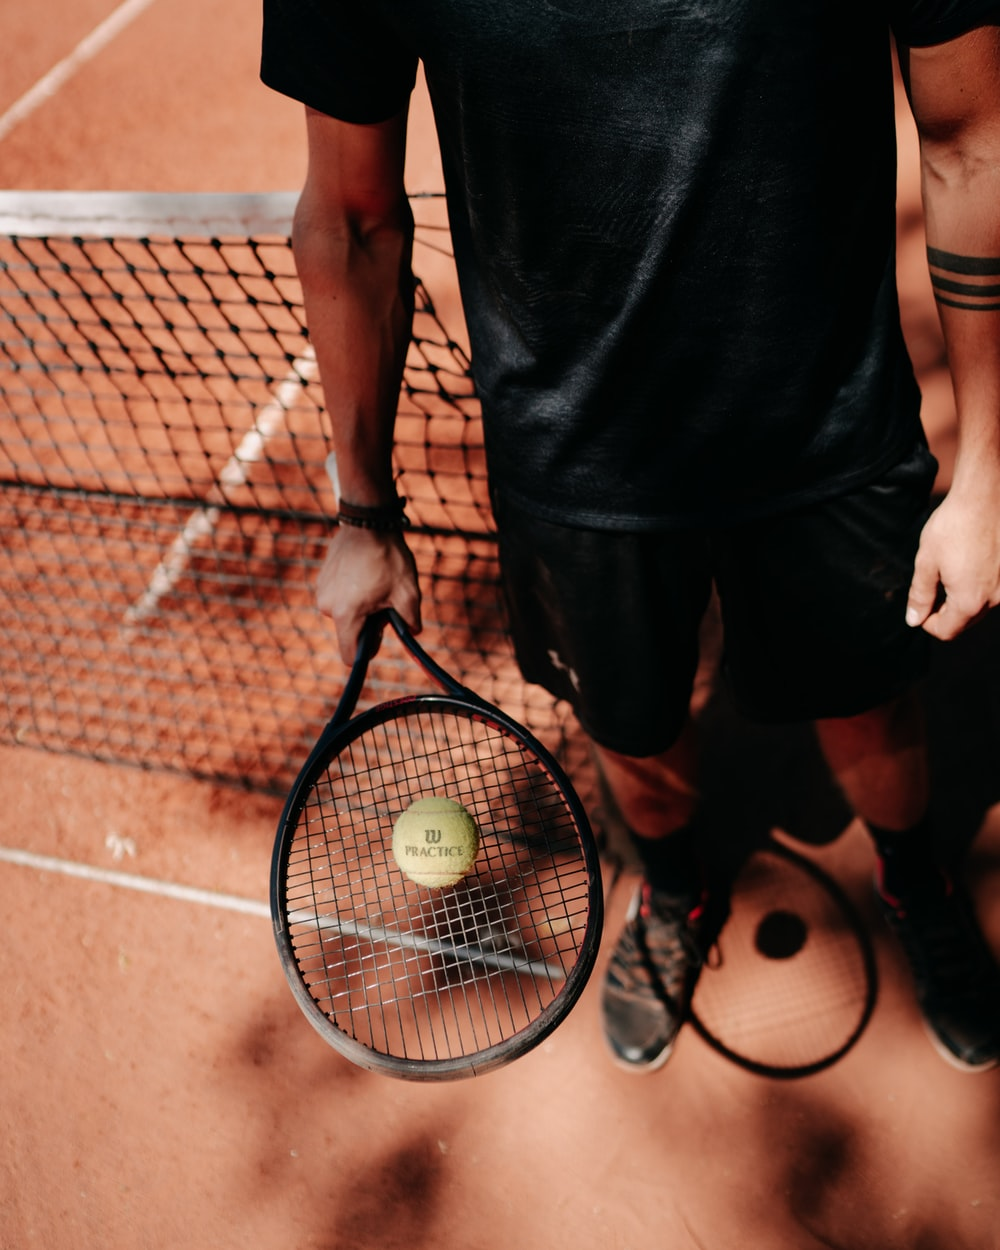 person in black shorts holding green tennis racket